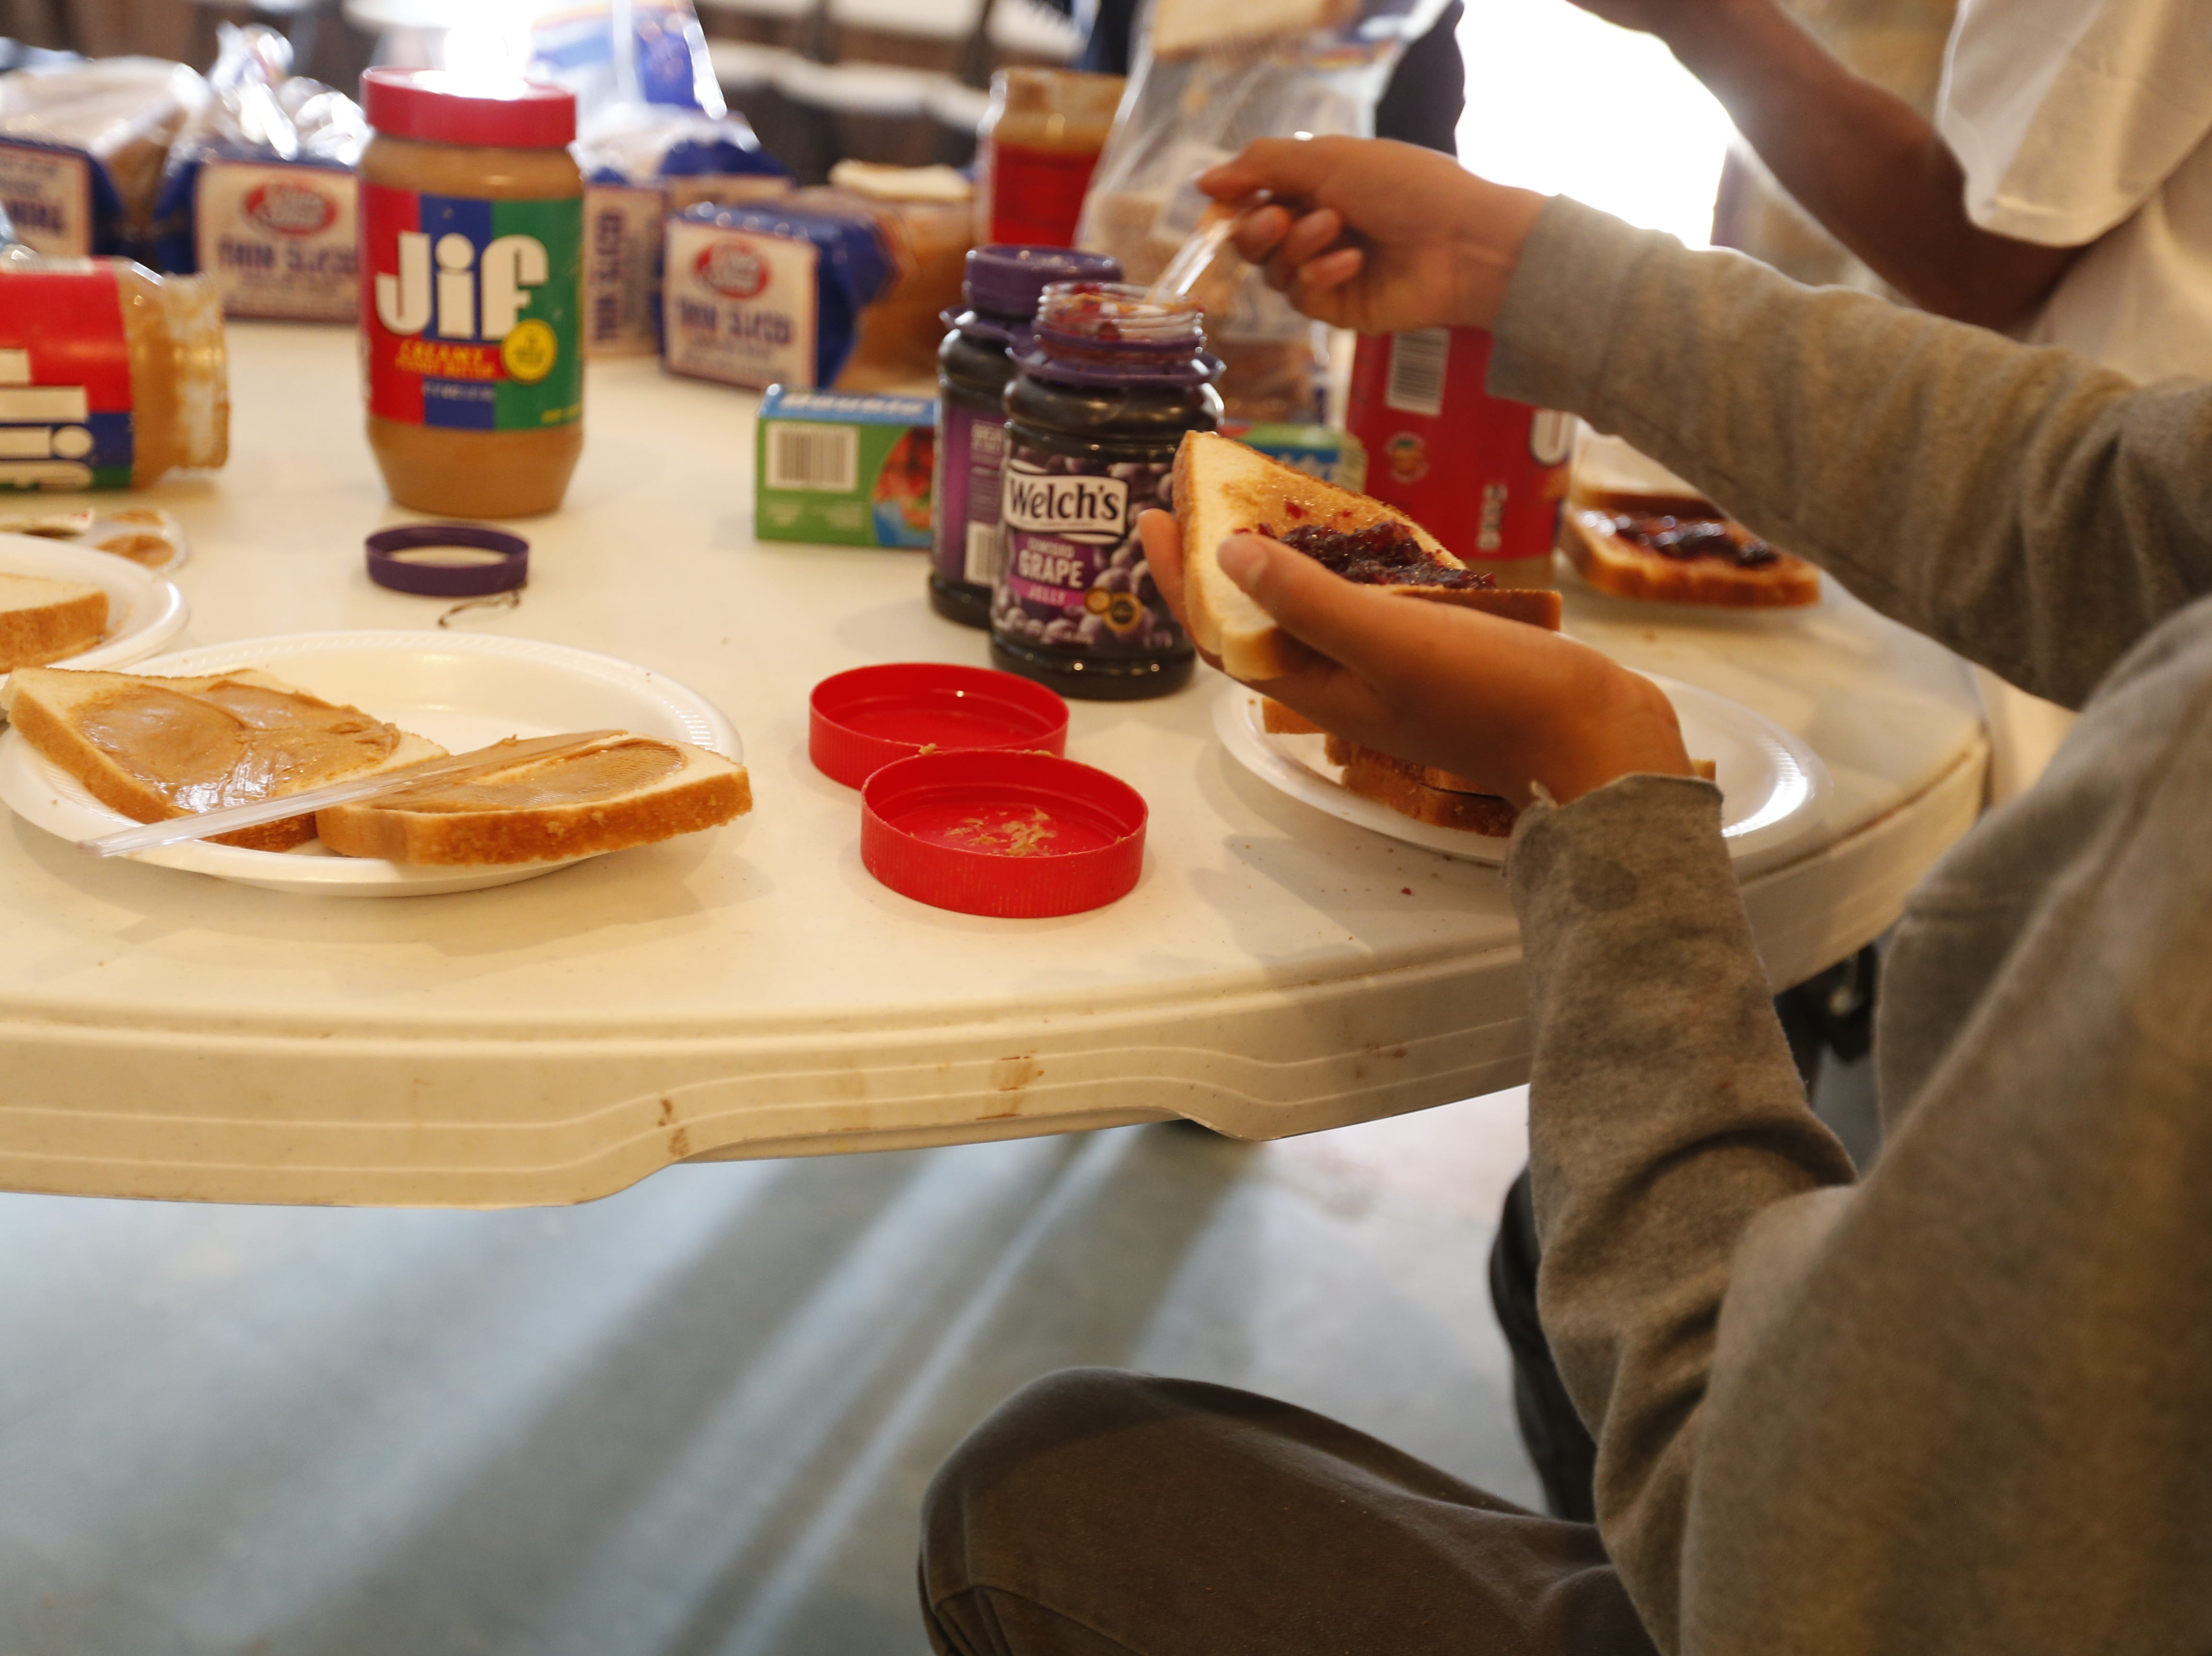 A 12-year-old boy from Mexico helps prepare peanut butter and jelly sandwiches.